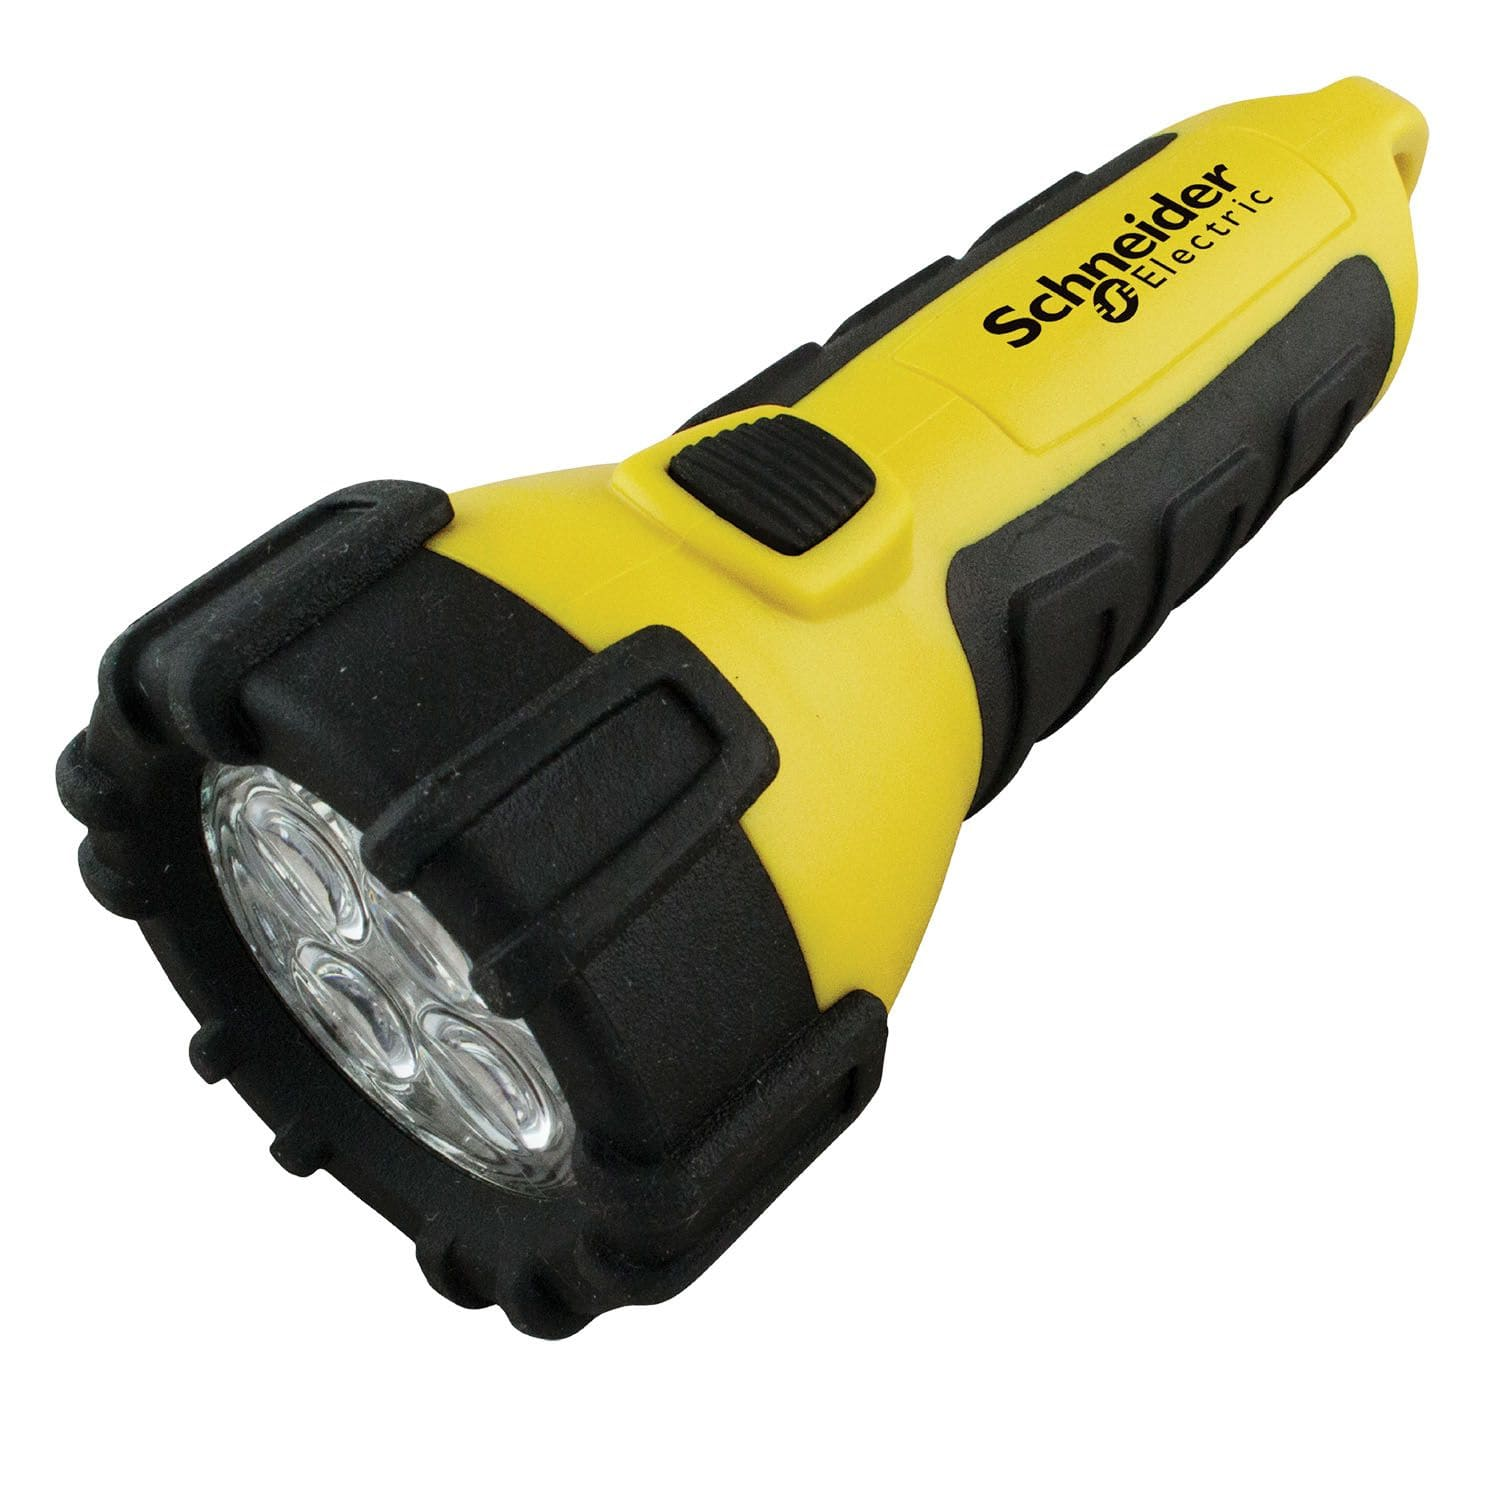 custom-printed-led-waterproof-floating-flashlight